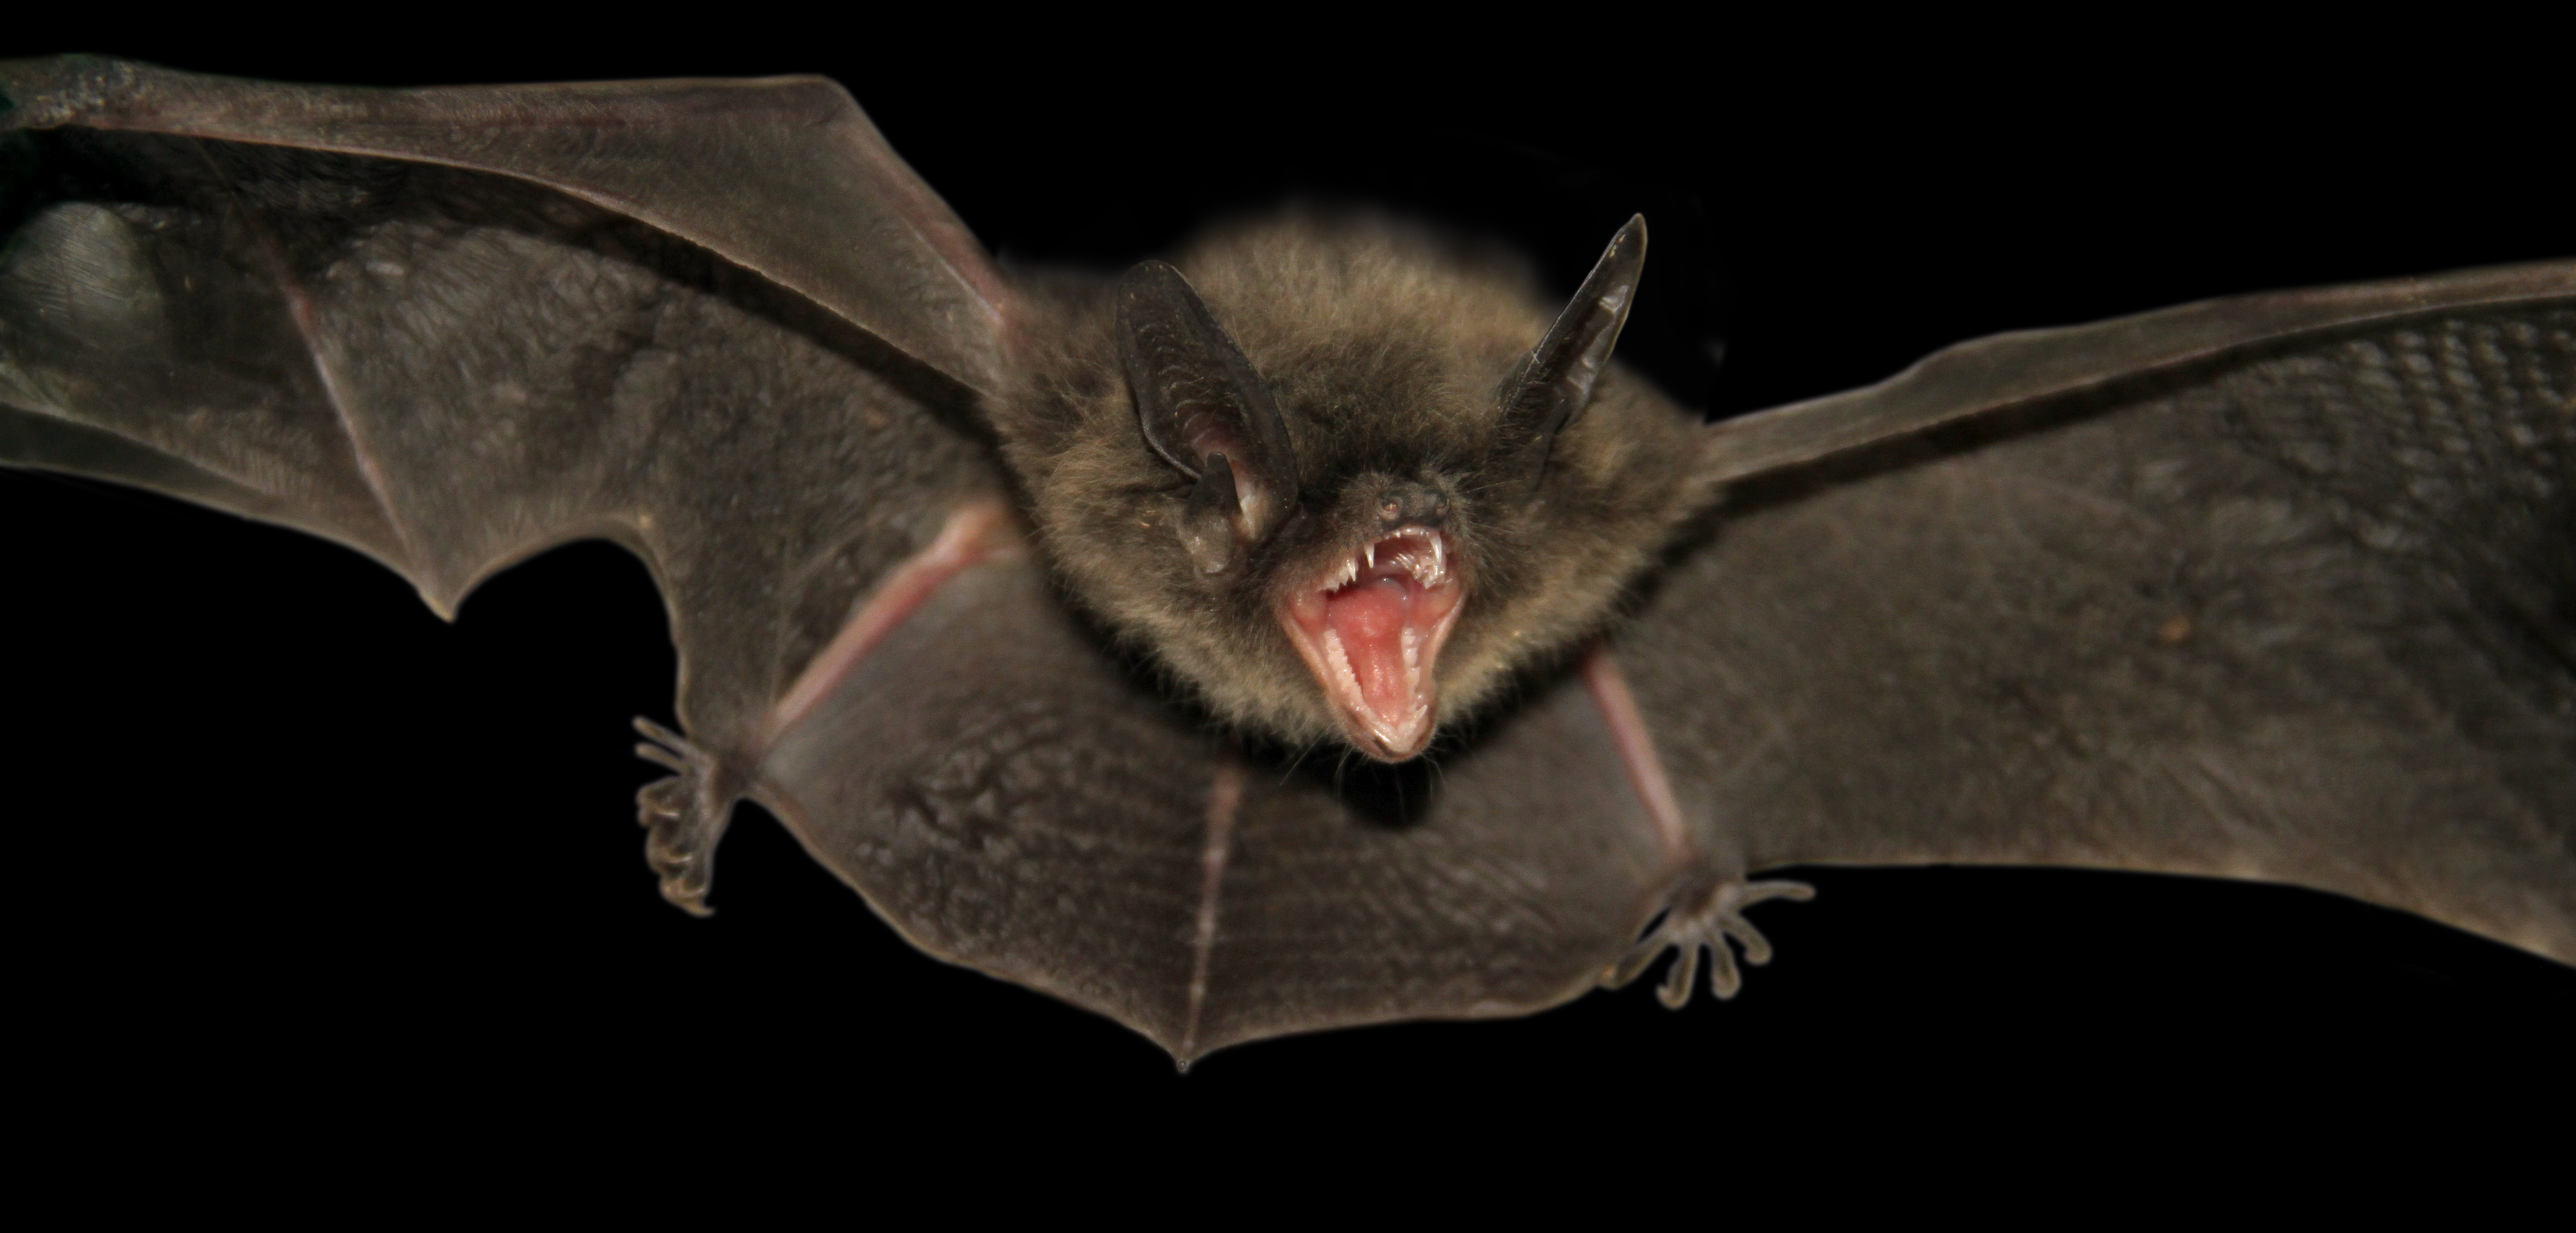 Picture of chinese micro bat David's Myotis, with mouth open and wings spread, on a black background